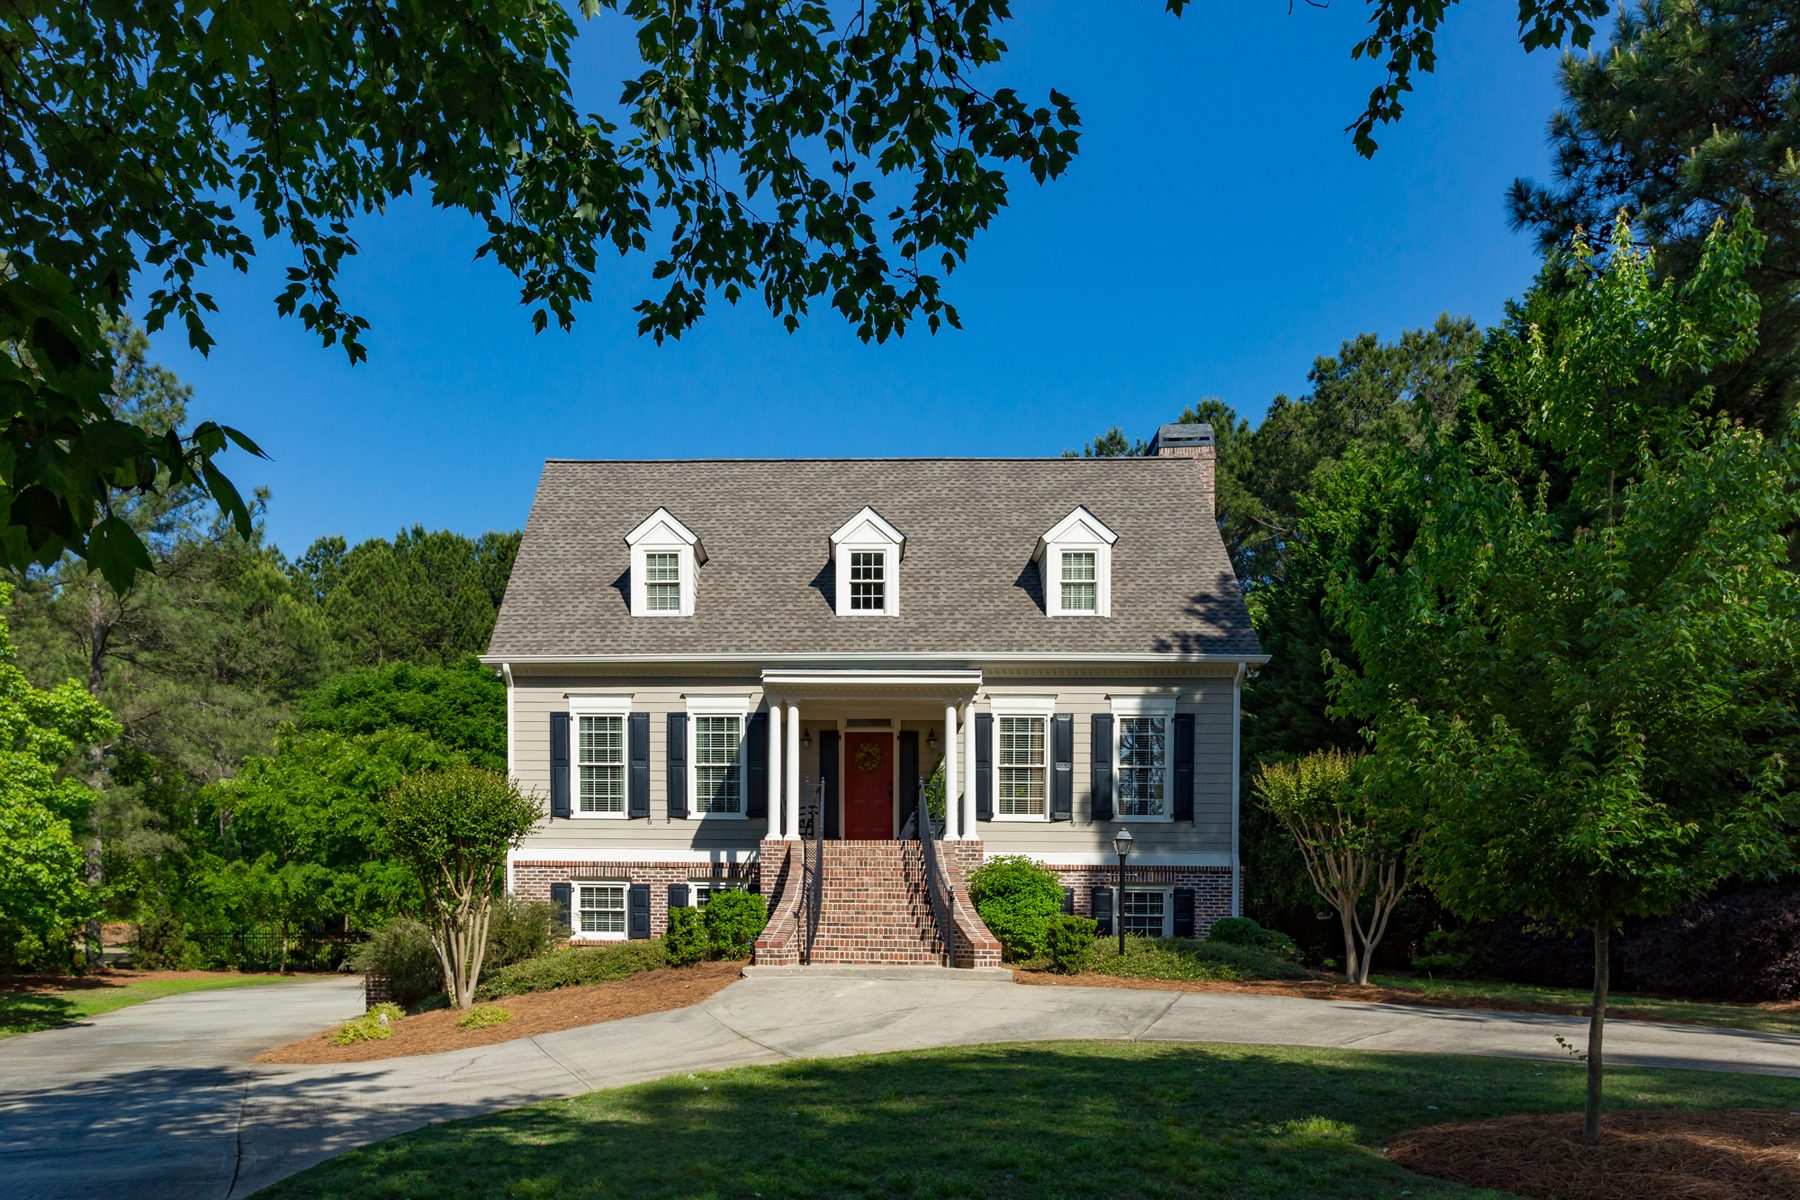 一戸建て のために 売買 アット Highgrove Home Perfectly Updated With Inviting Decor And Neutral Color Palette 145 Meeting House Rd Fayetteville, ジョージア 30215 アメリカ合衆国